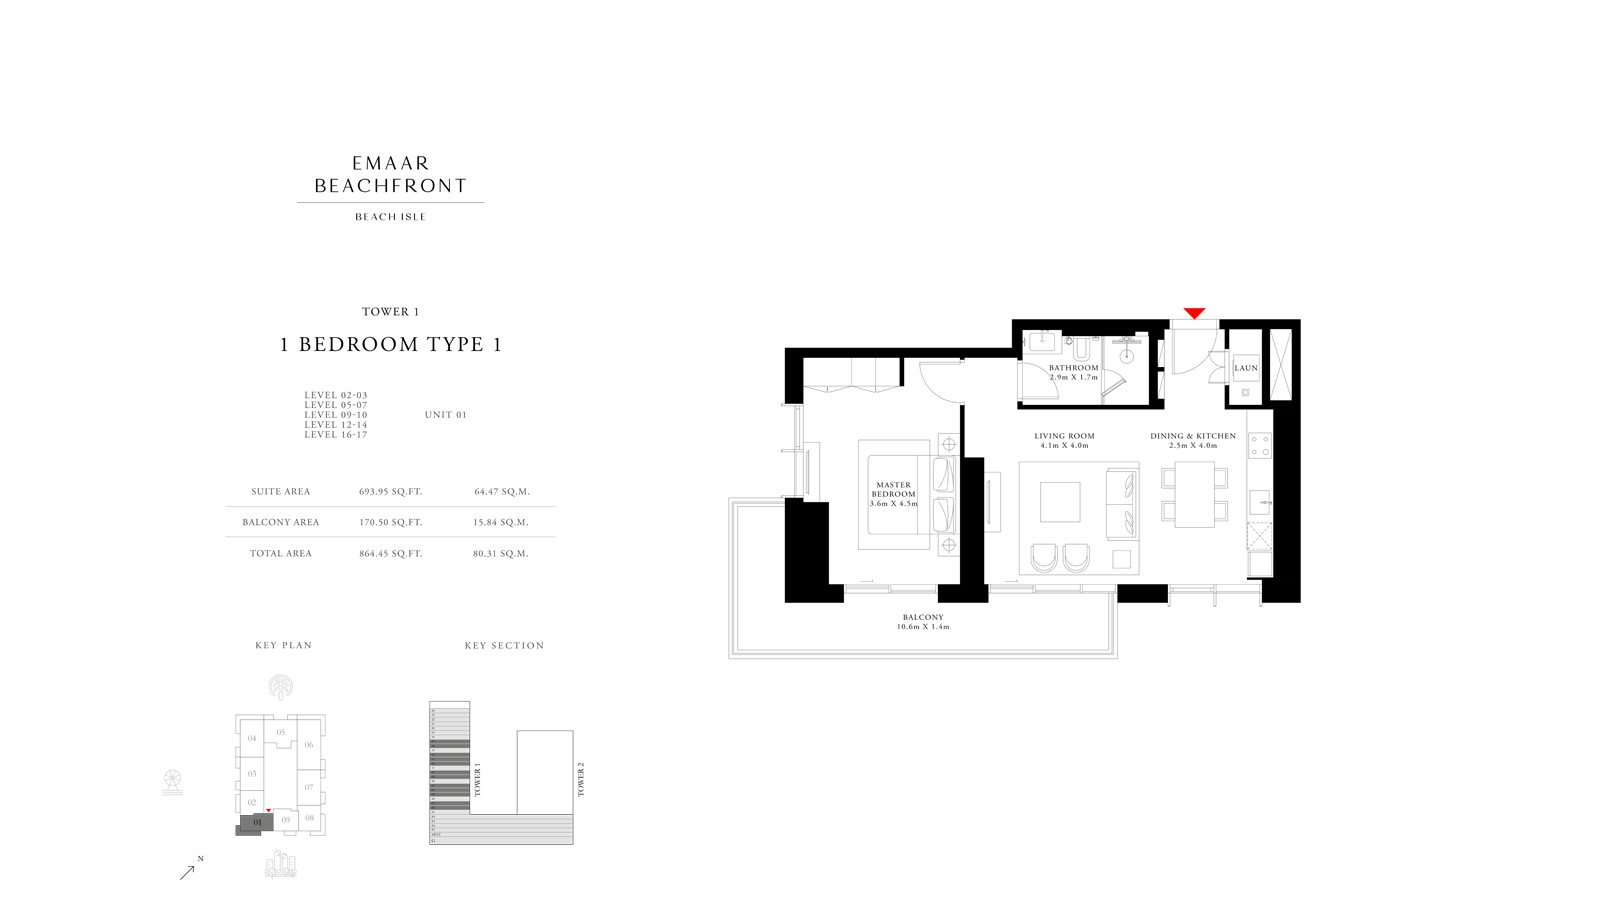 1 Bedroom Type 1 Tower 1, Size 864    sq. ft.